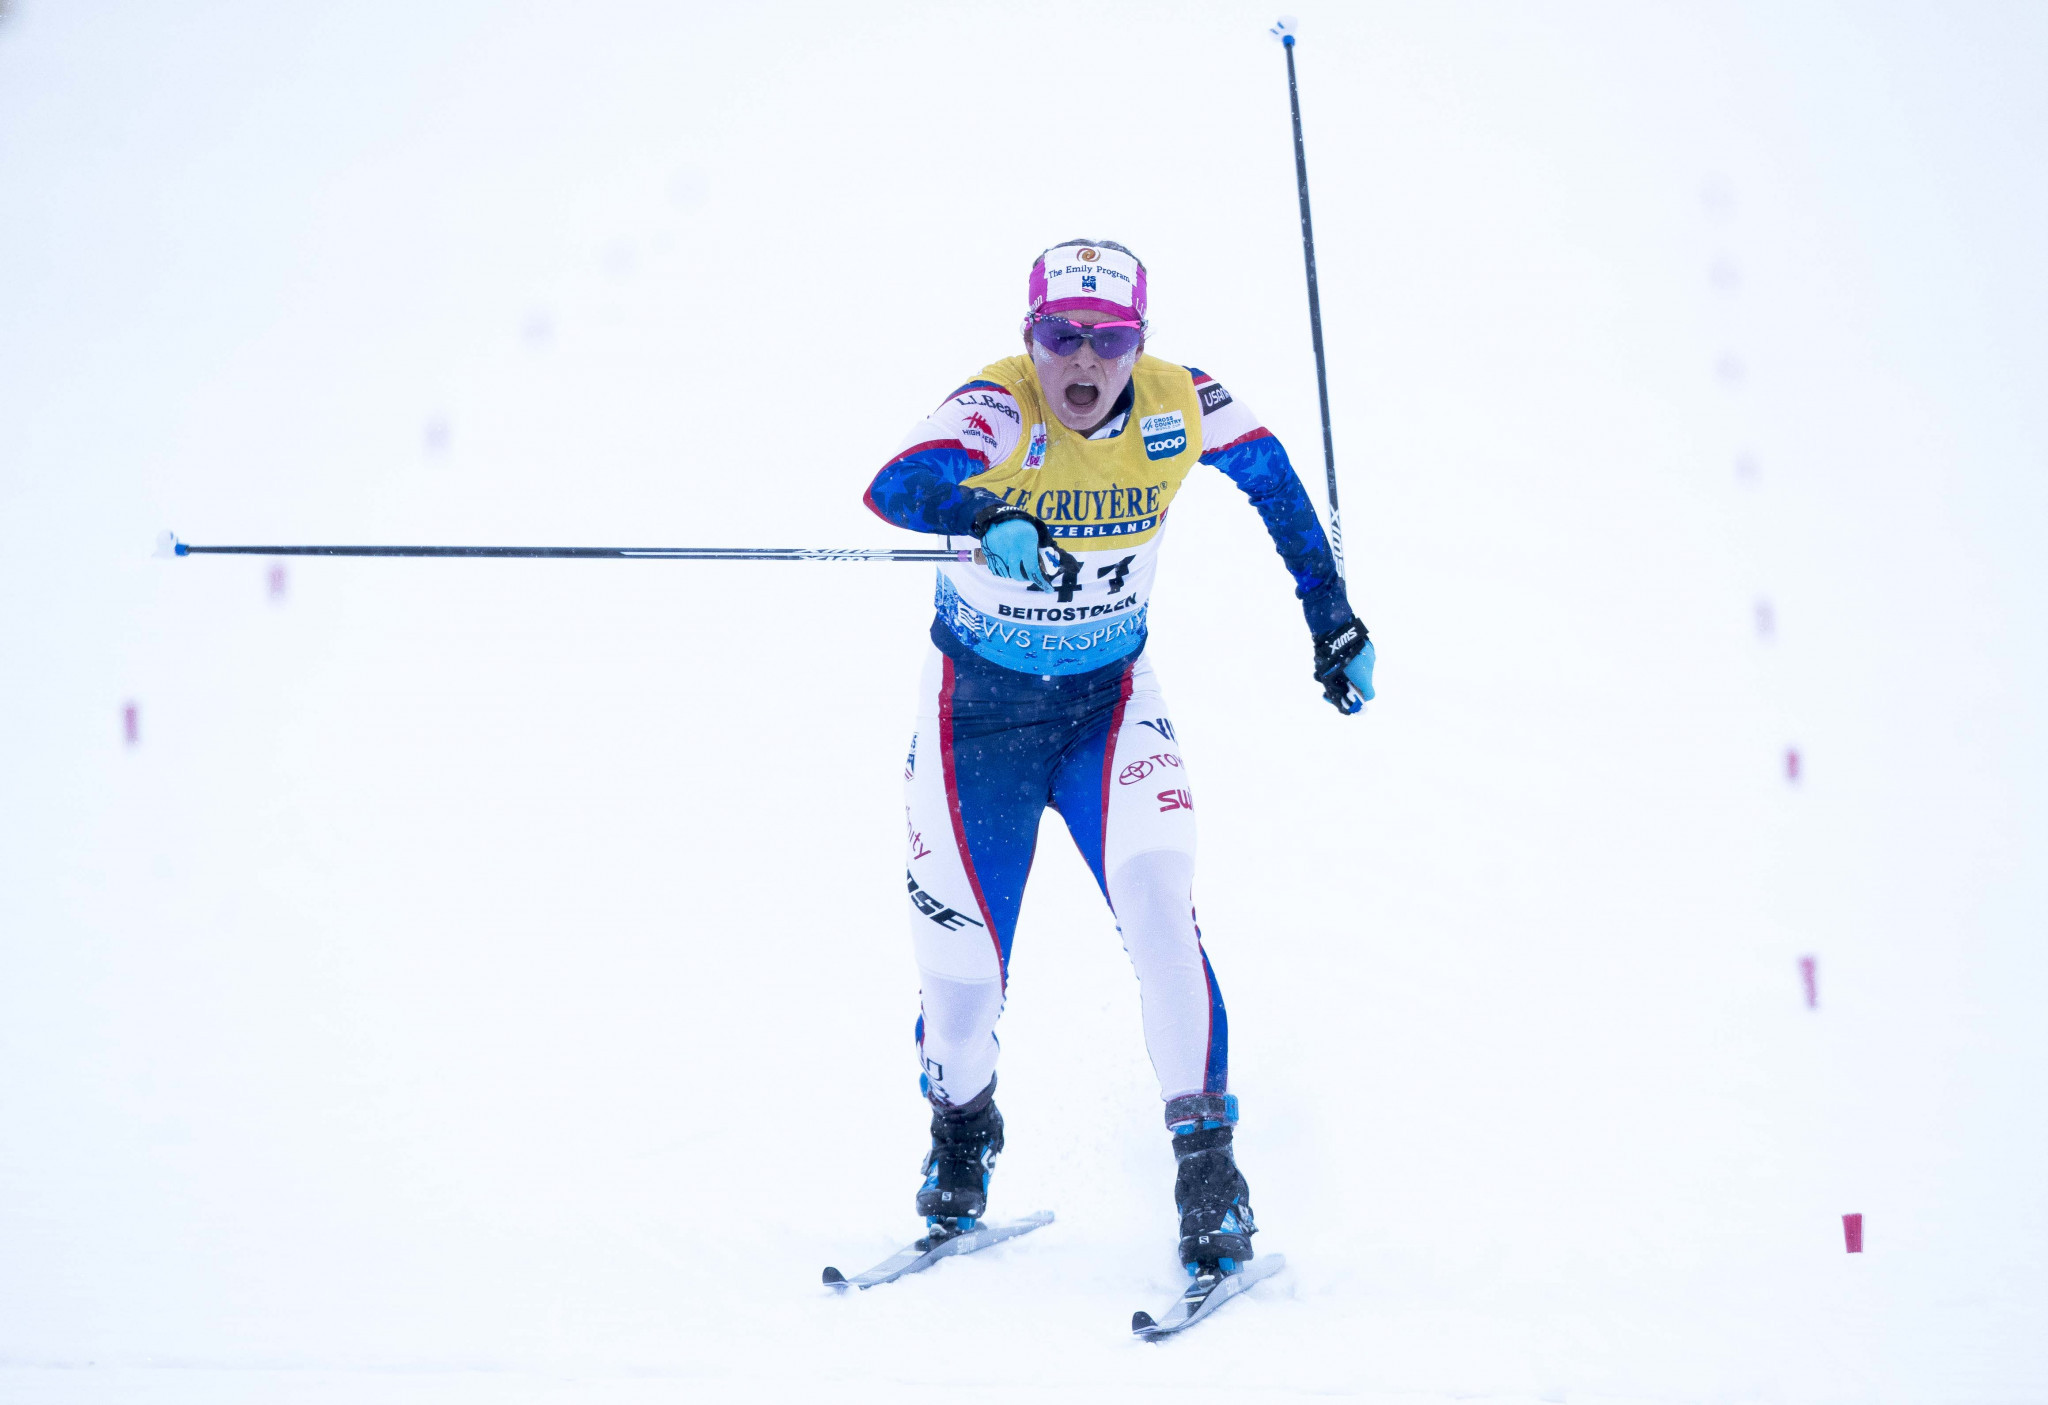 Diggins gains first win of season as Pellegrino triumphs on home snow at FIS Cross-Country World Cup in Cogne